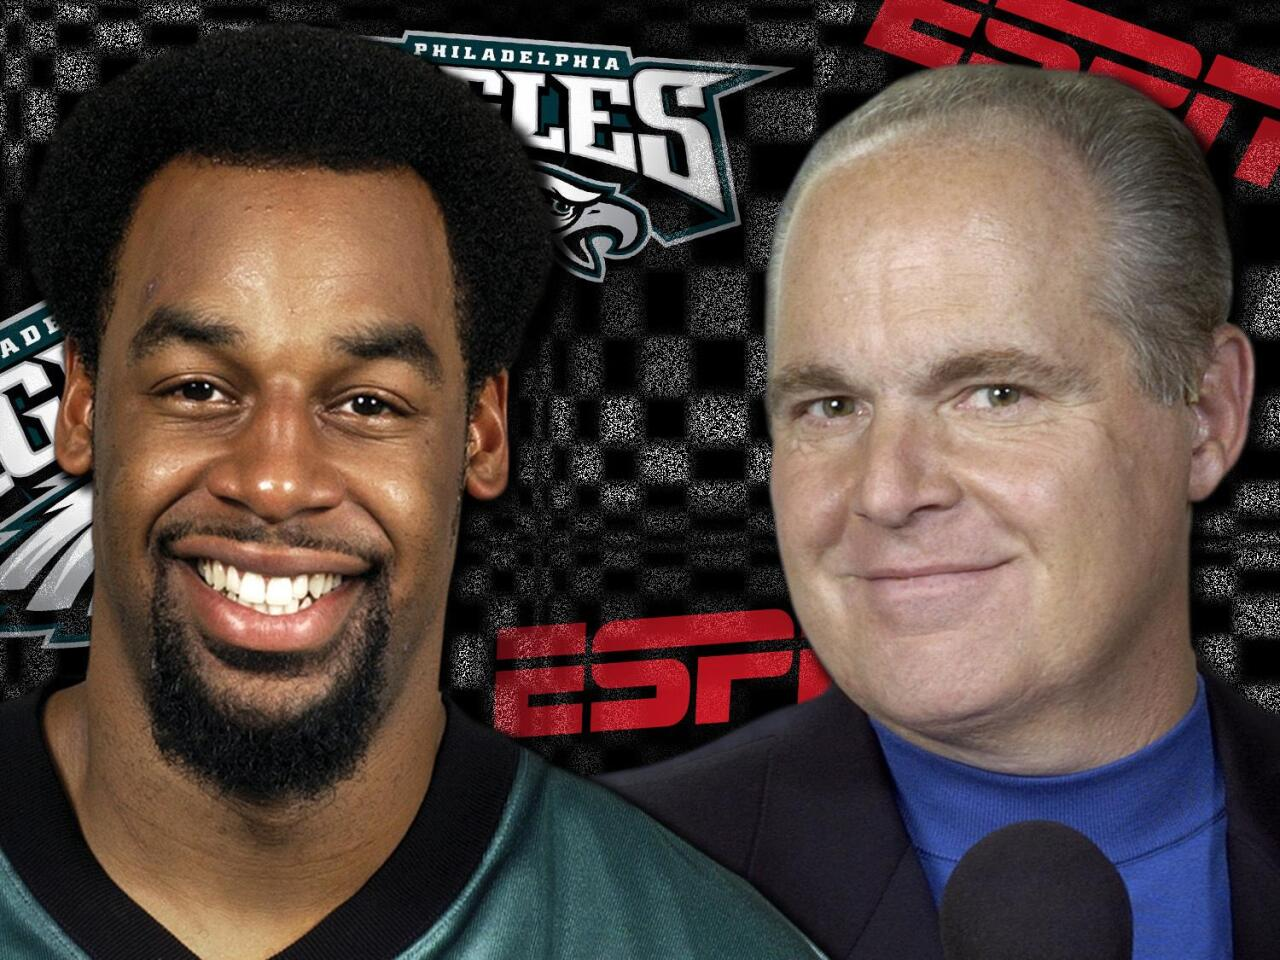 Rush Limbaugh and Donovan McNabb, 2003 controversy